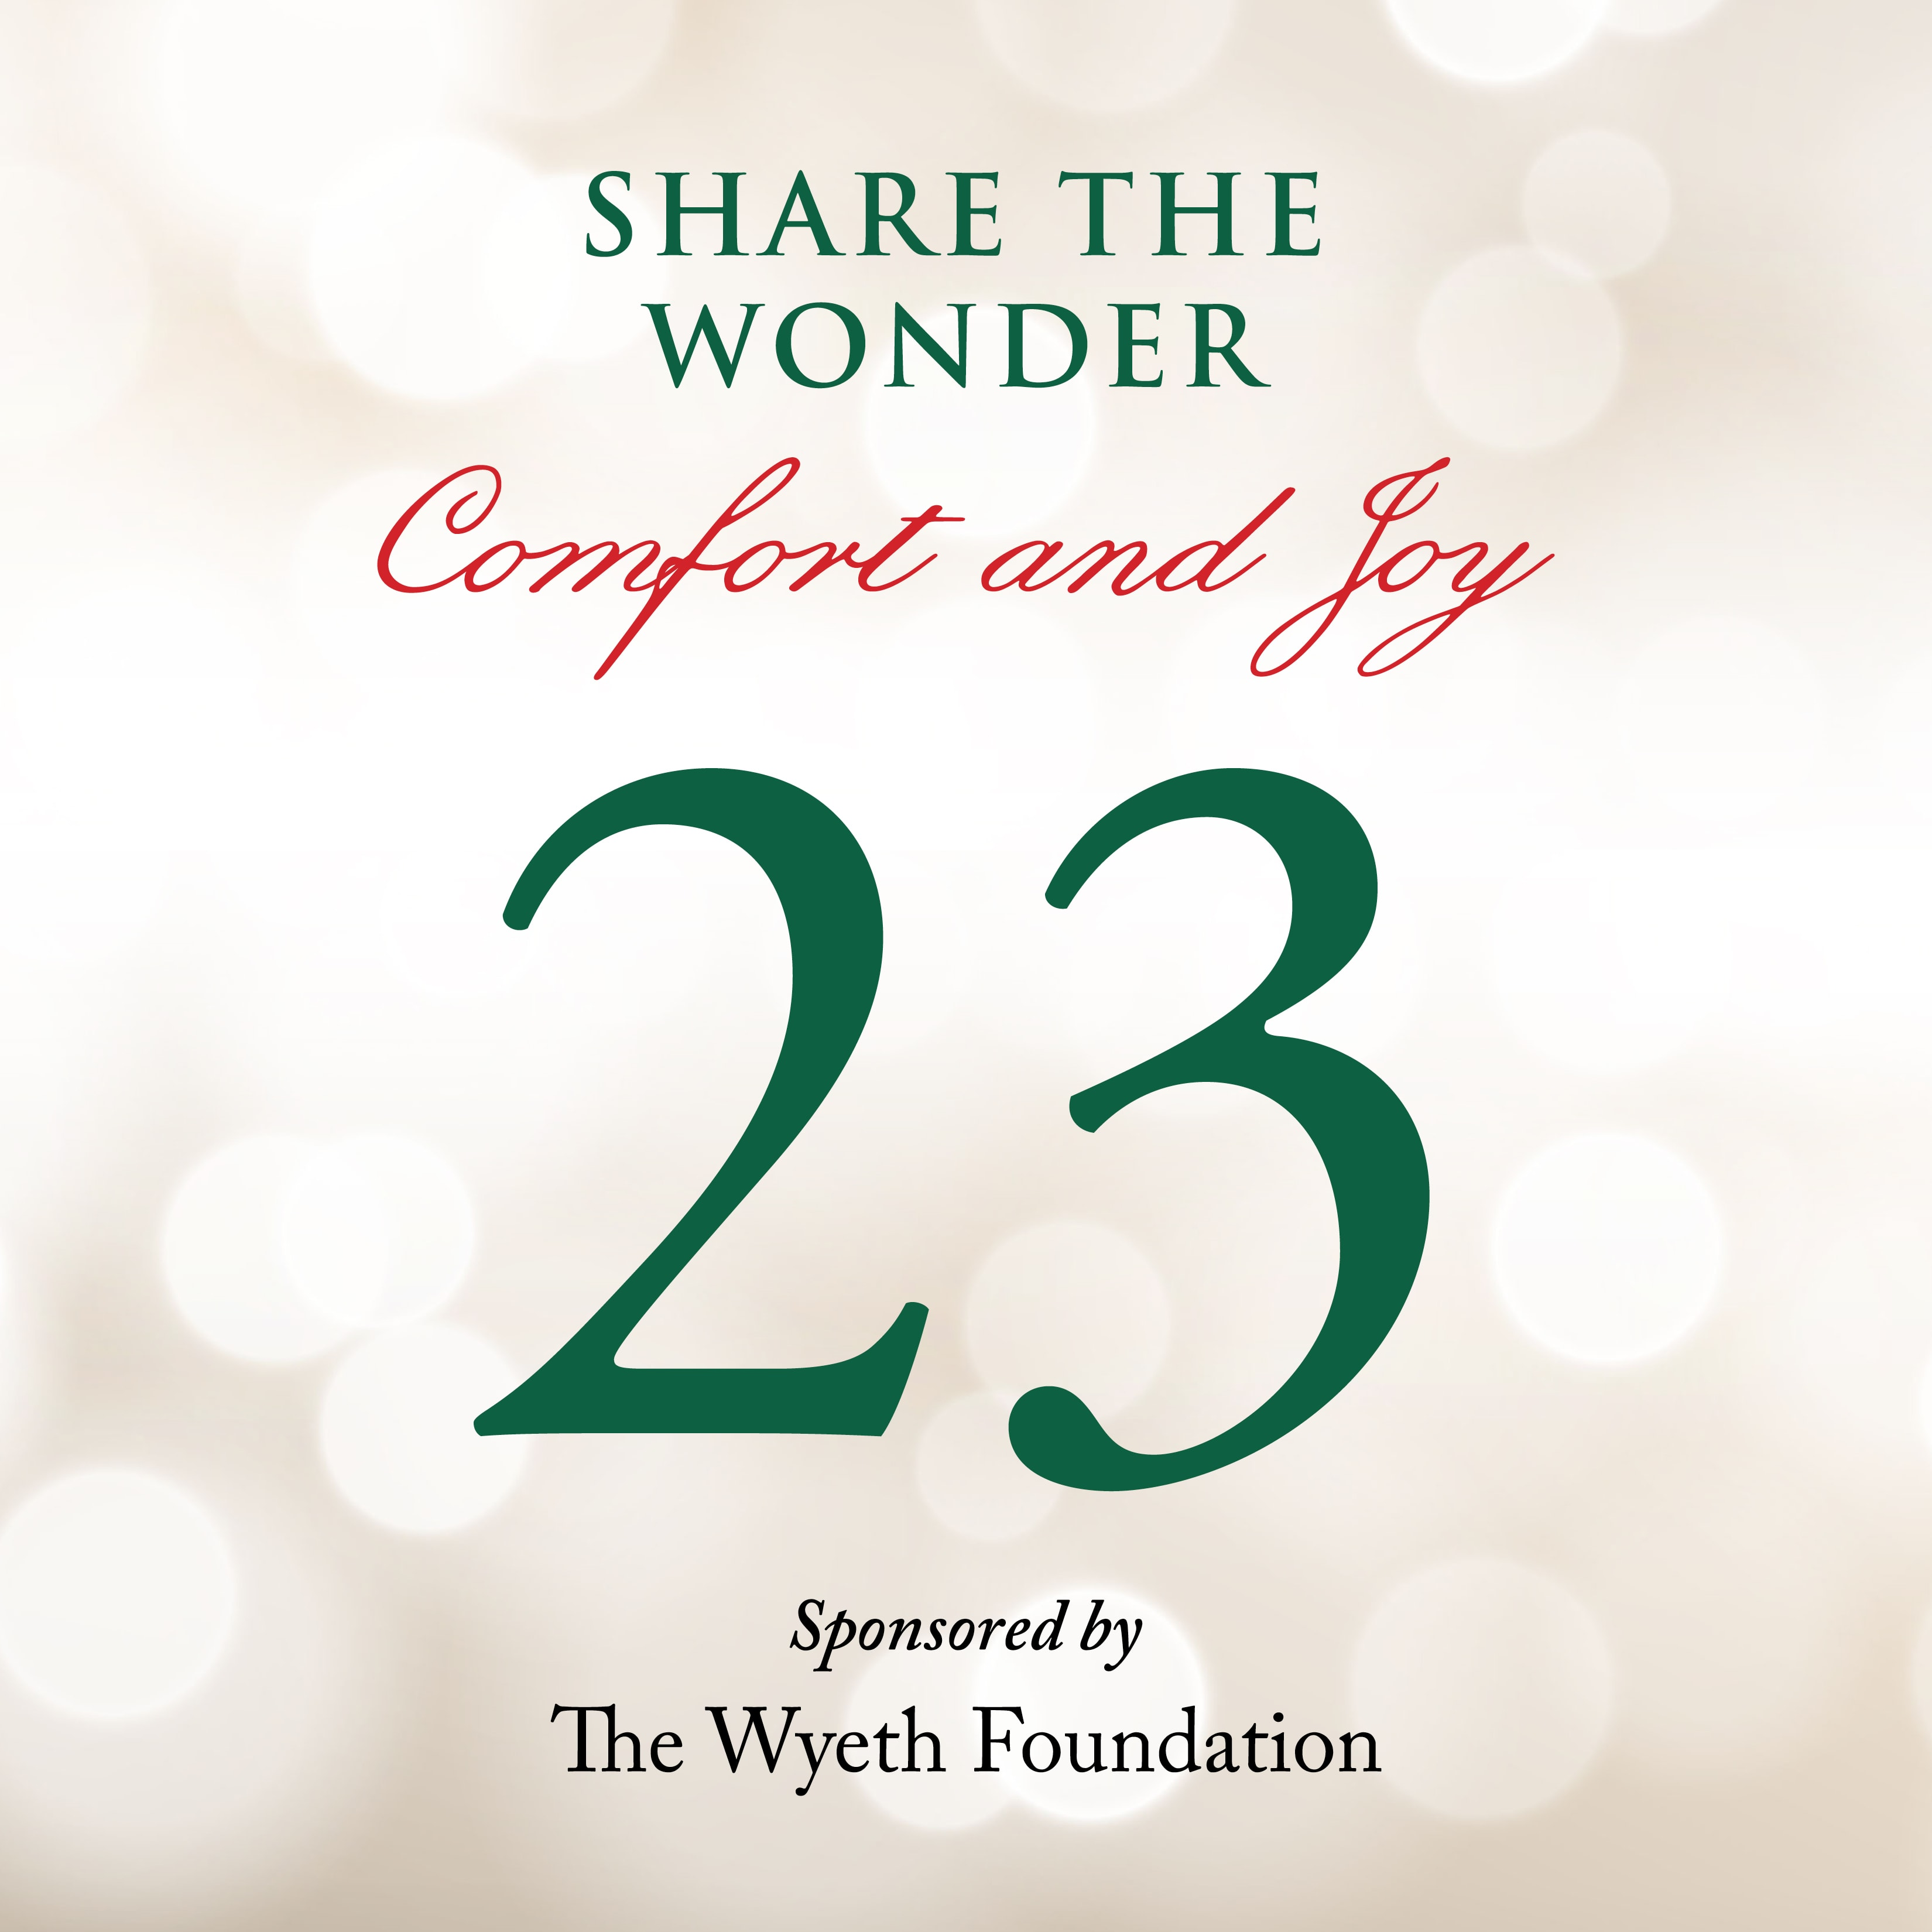 Day 23 of Share the Wonder: December 20